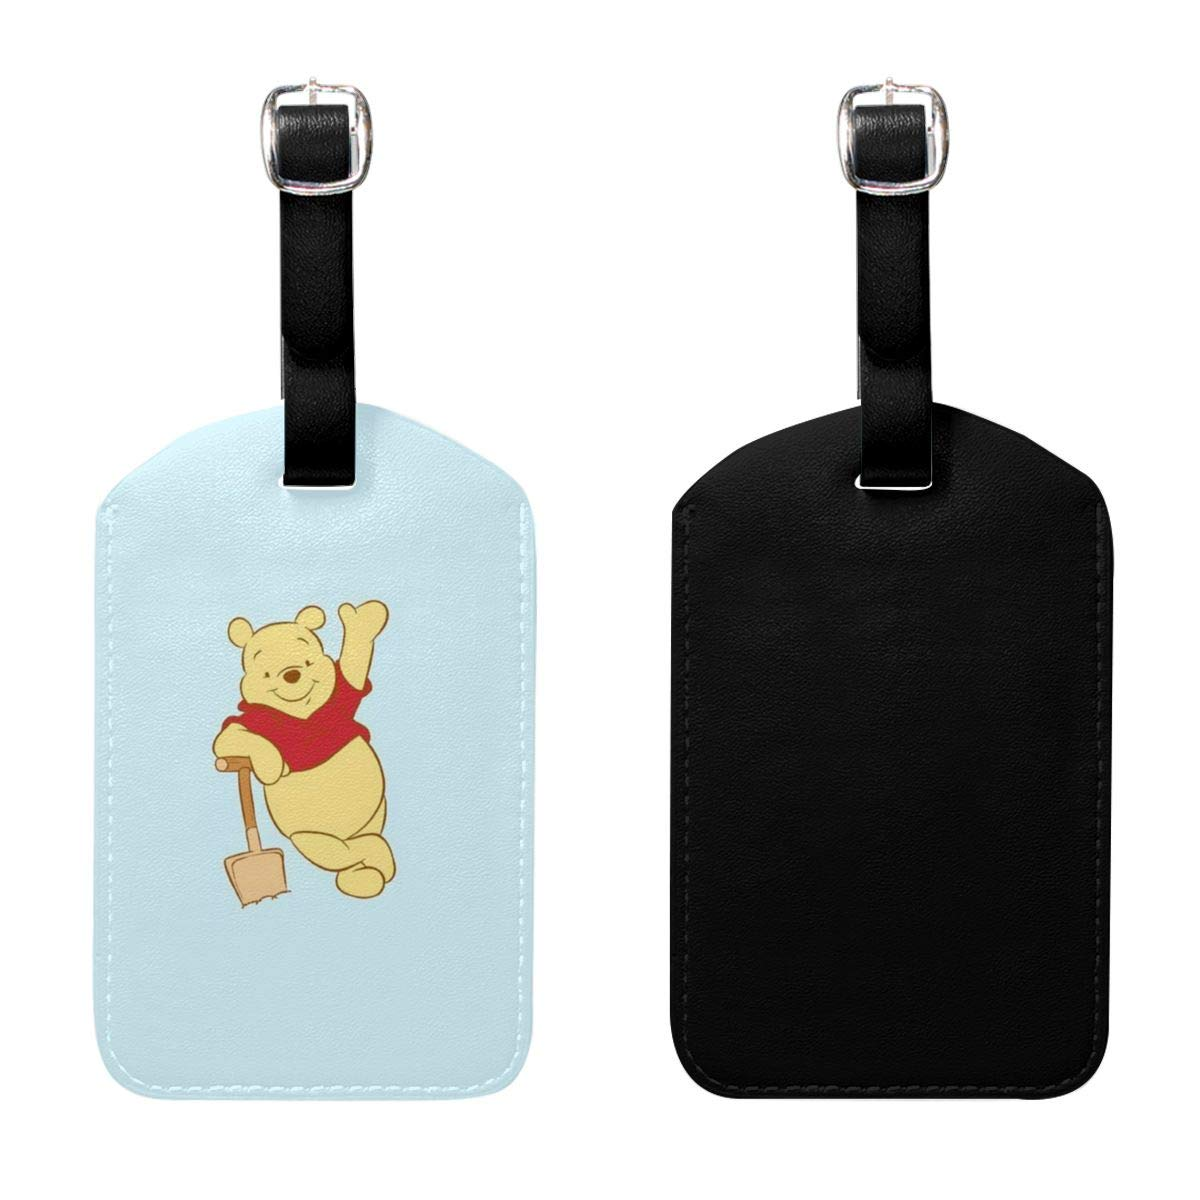 Set of 2 PU Leather Luggage Tags Pooh Bear Suitcase Labels Bag Adjustable Leather Strap Travel Accessories